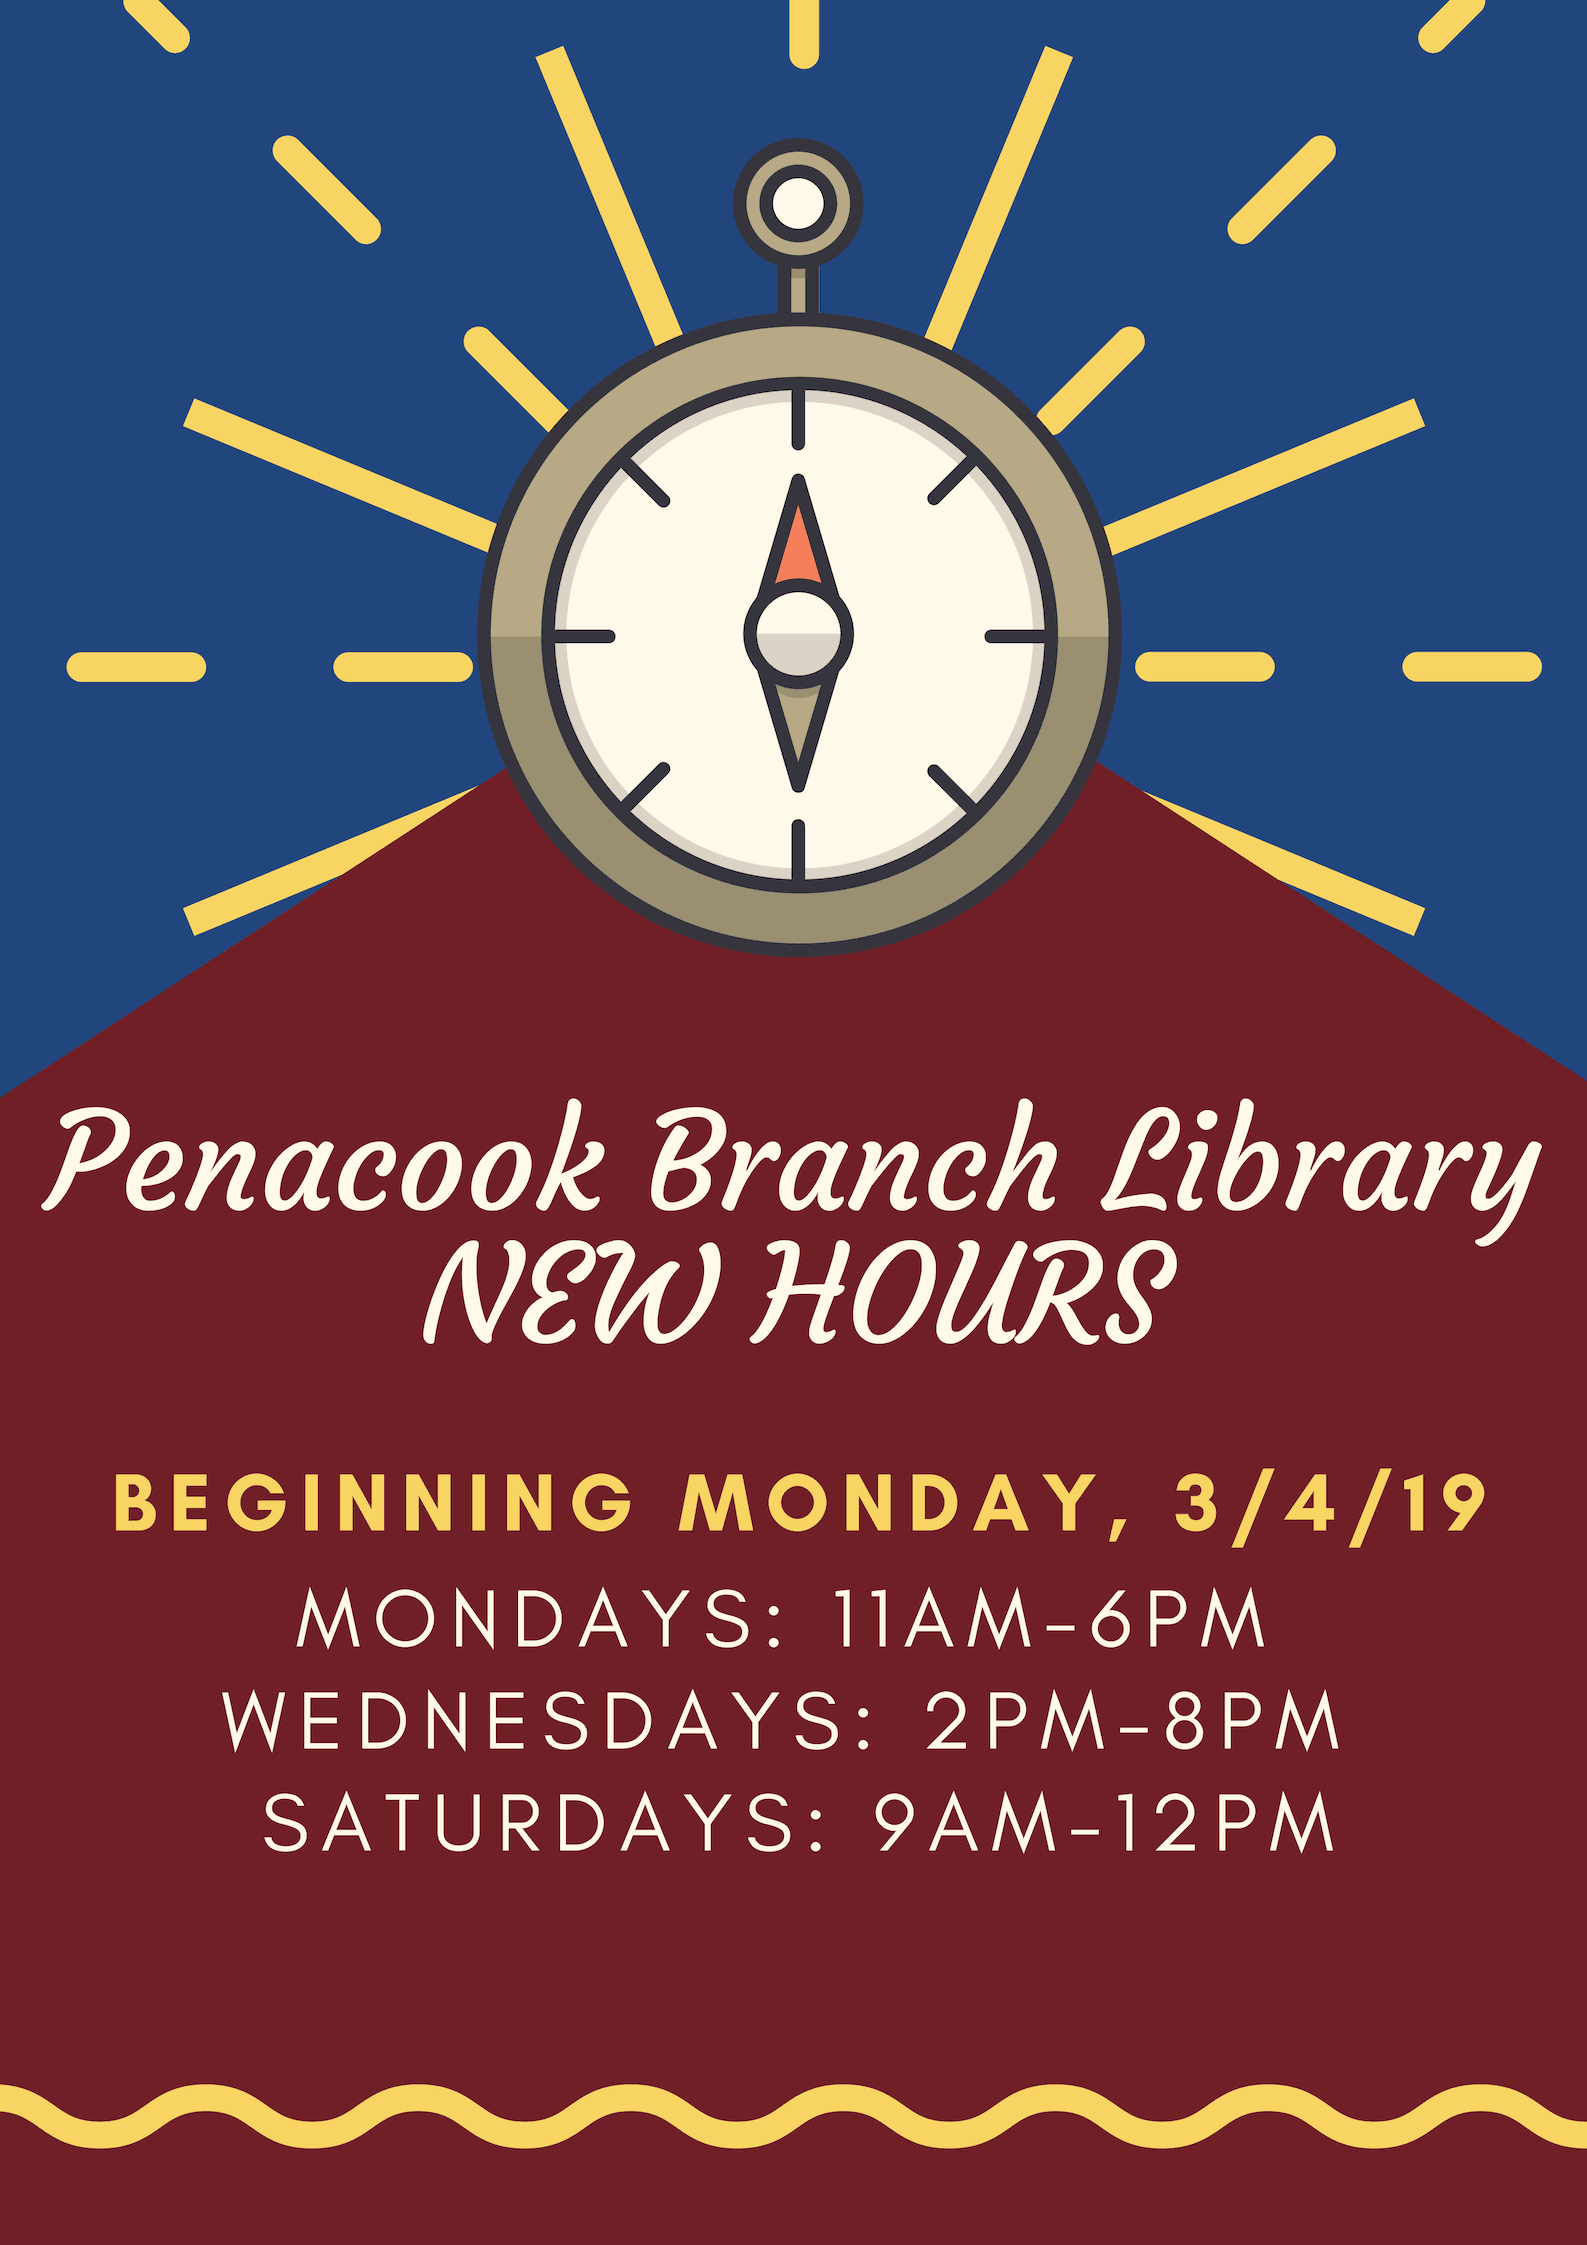 Penacook Branch Library New Hours Flyer